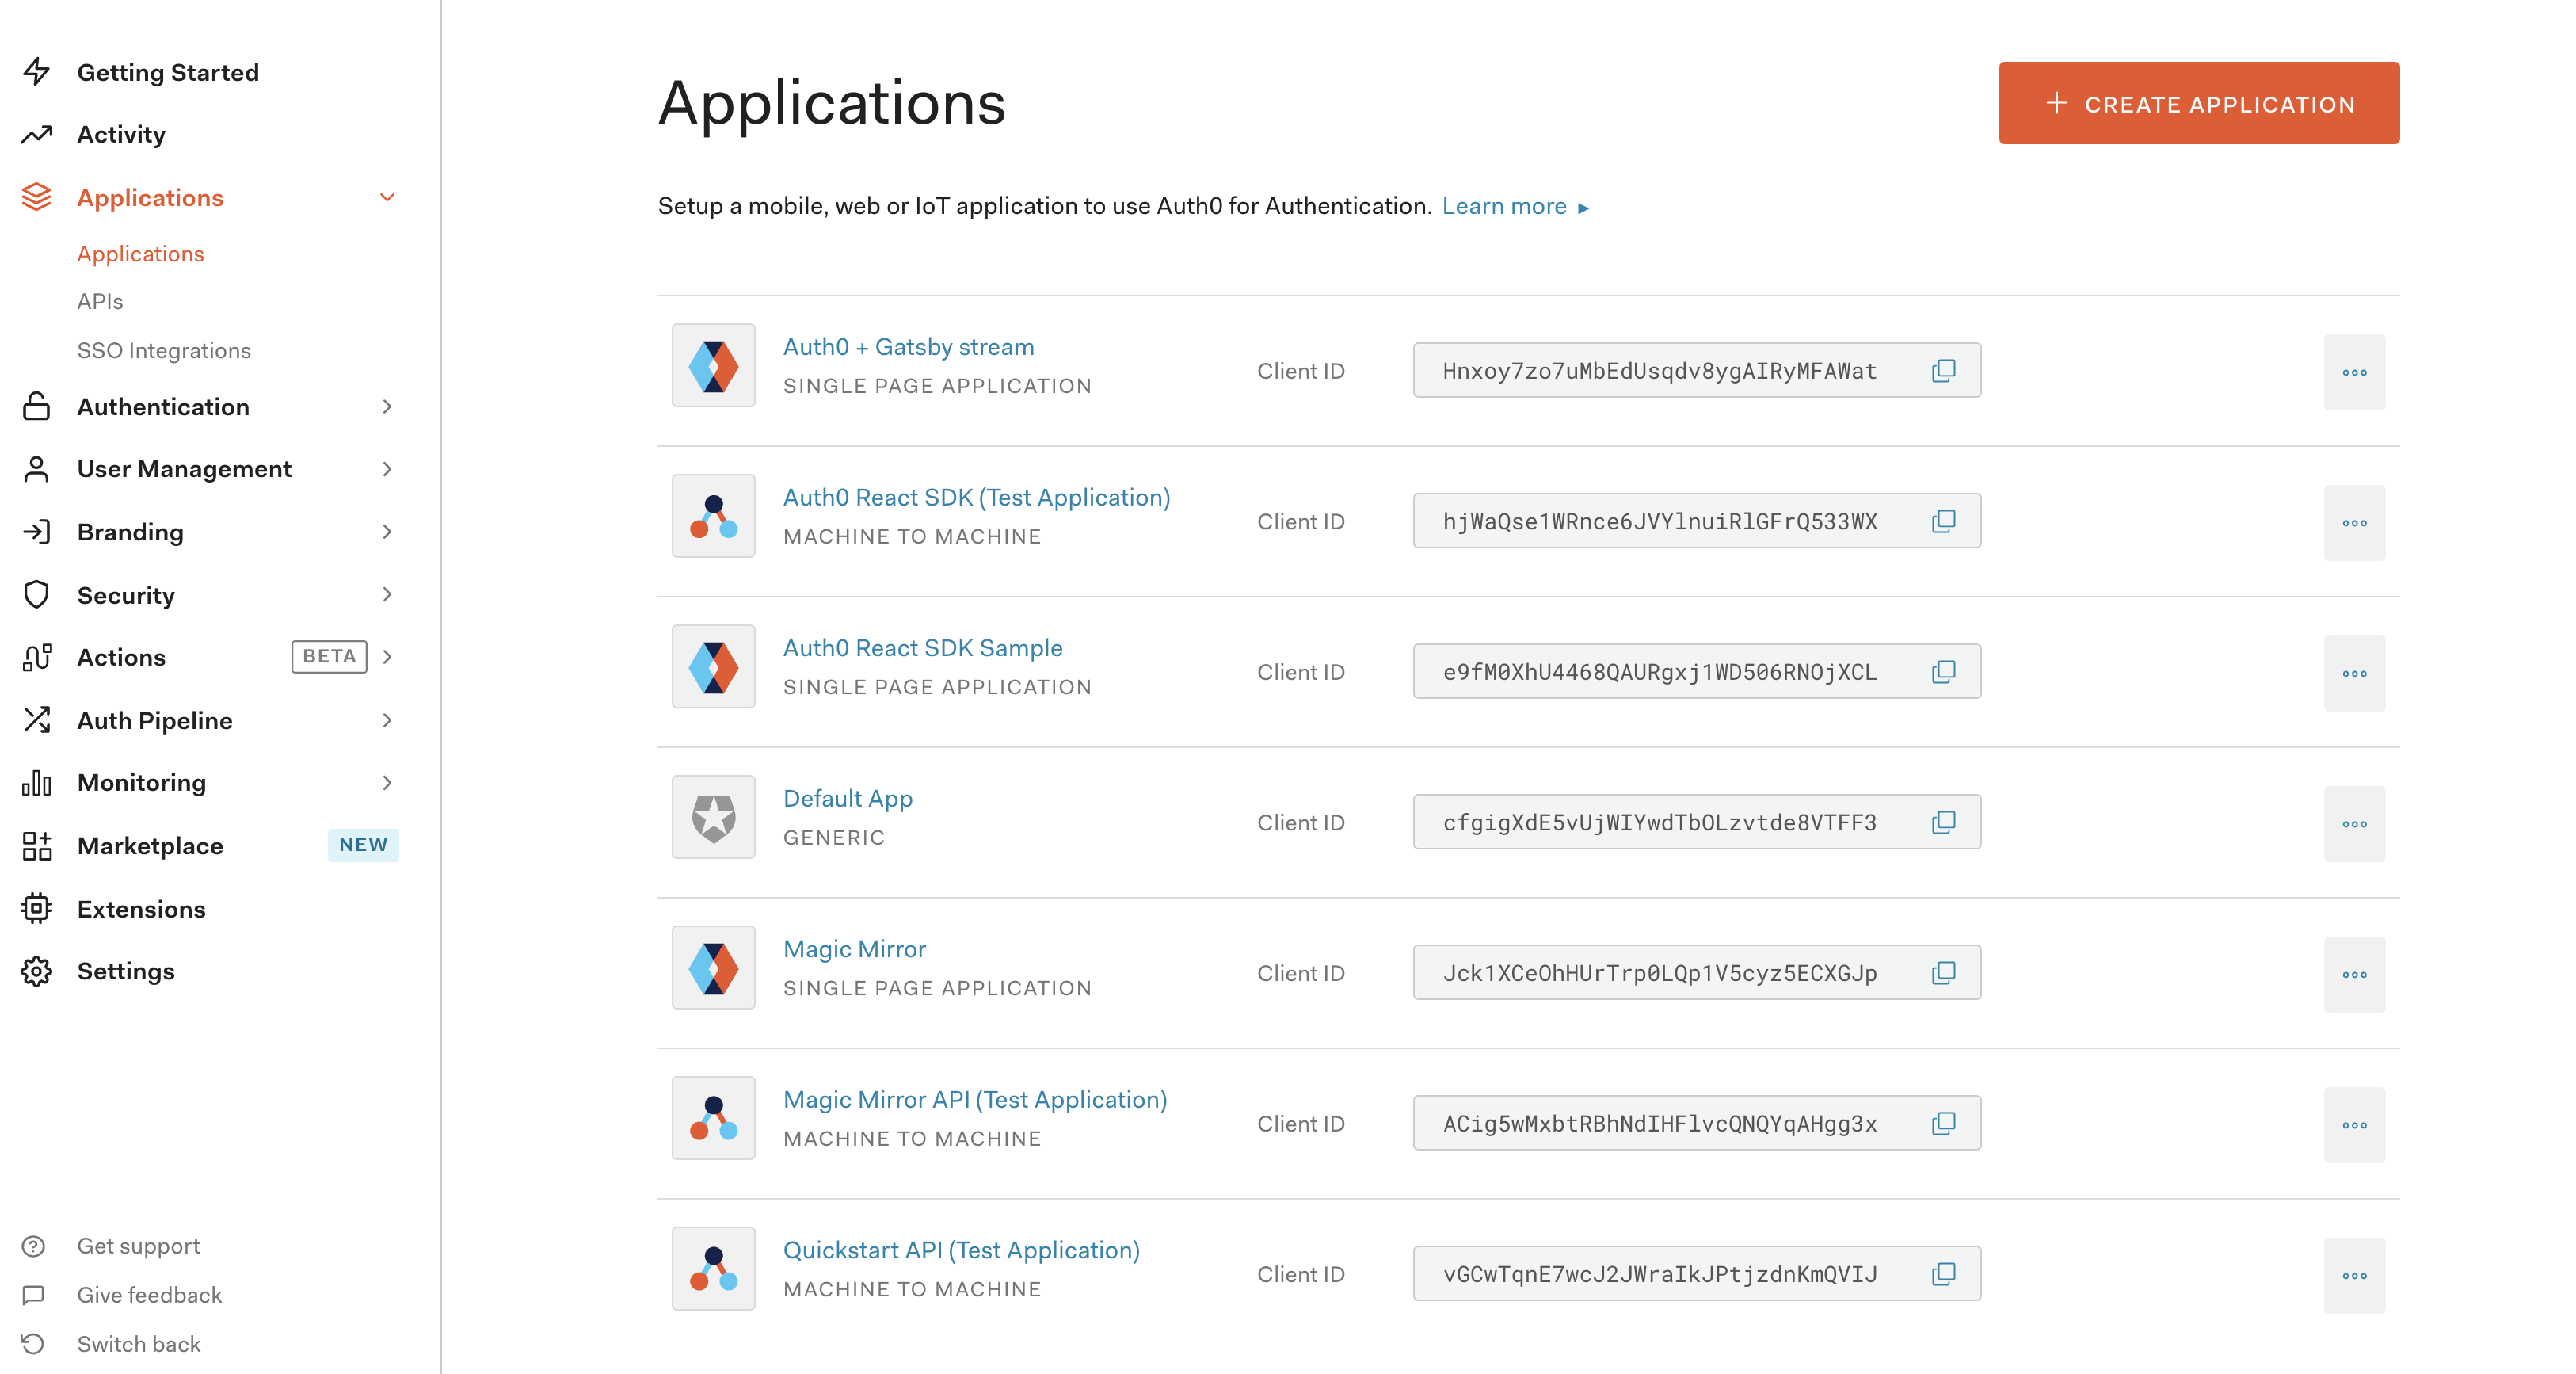 Screenshot of Auth0 applications dashboard